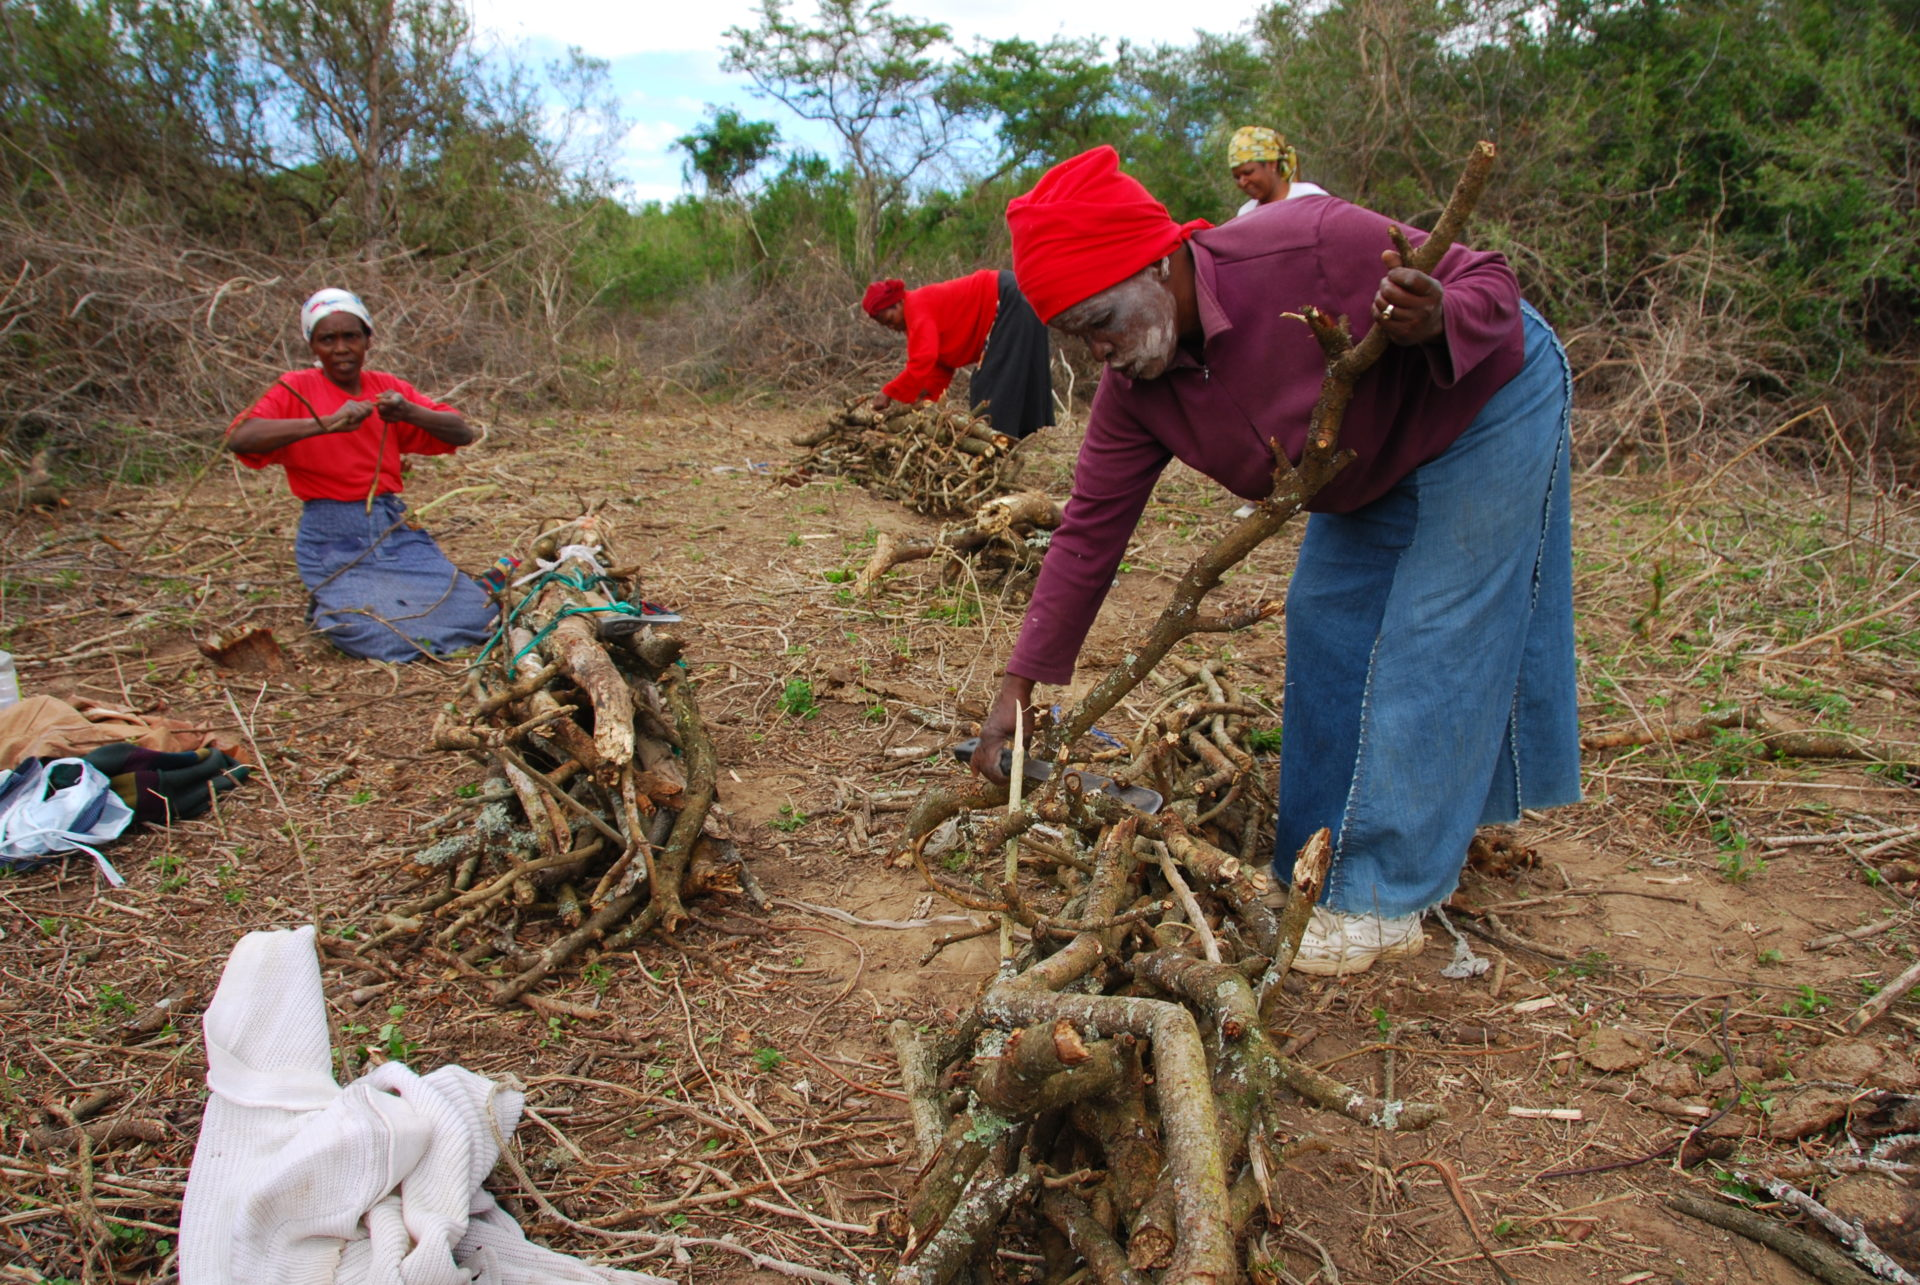 Women collecting fuelwood for domestic use. Such activities provide opportunities for women to get away from the trouble and difficulties experienced at home and to be in the company of friends for a short time. Photo copyright: Tony Dold